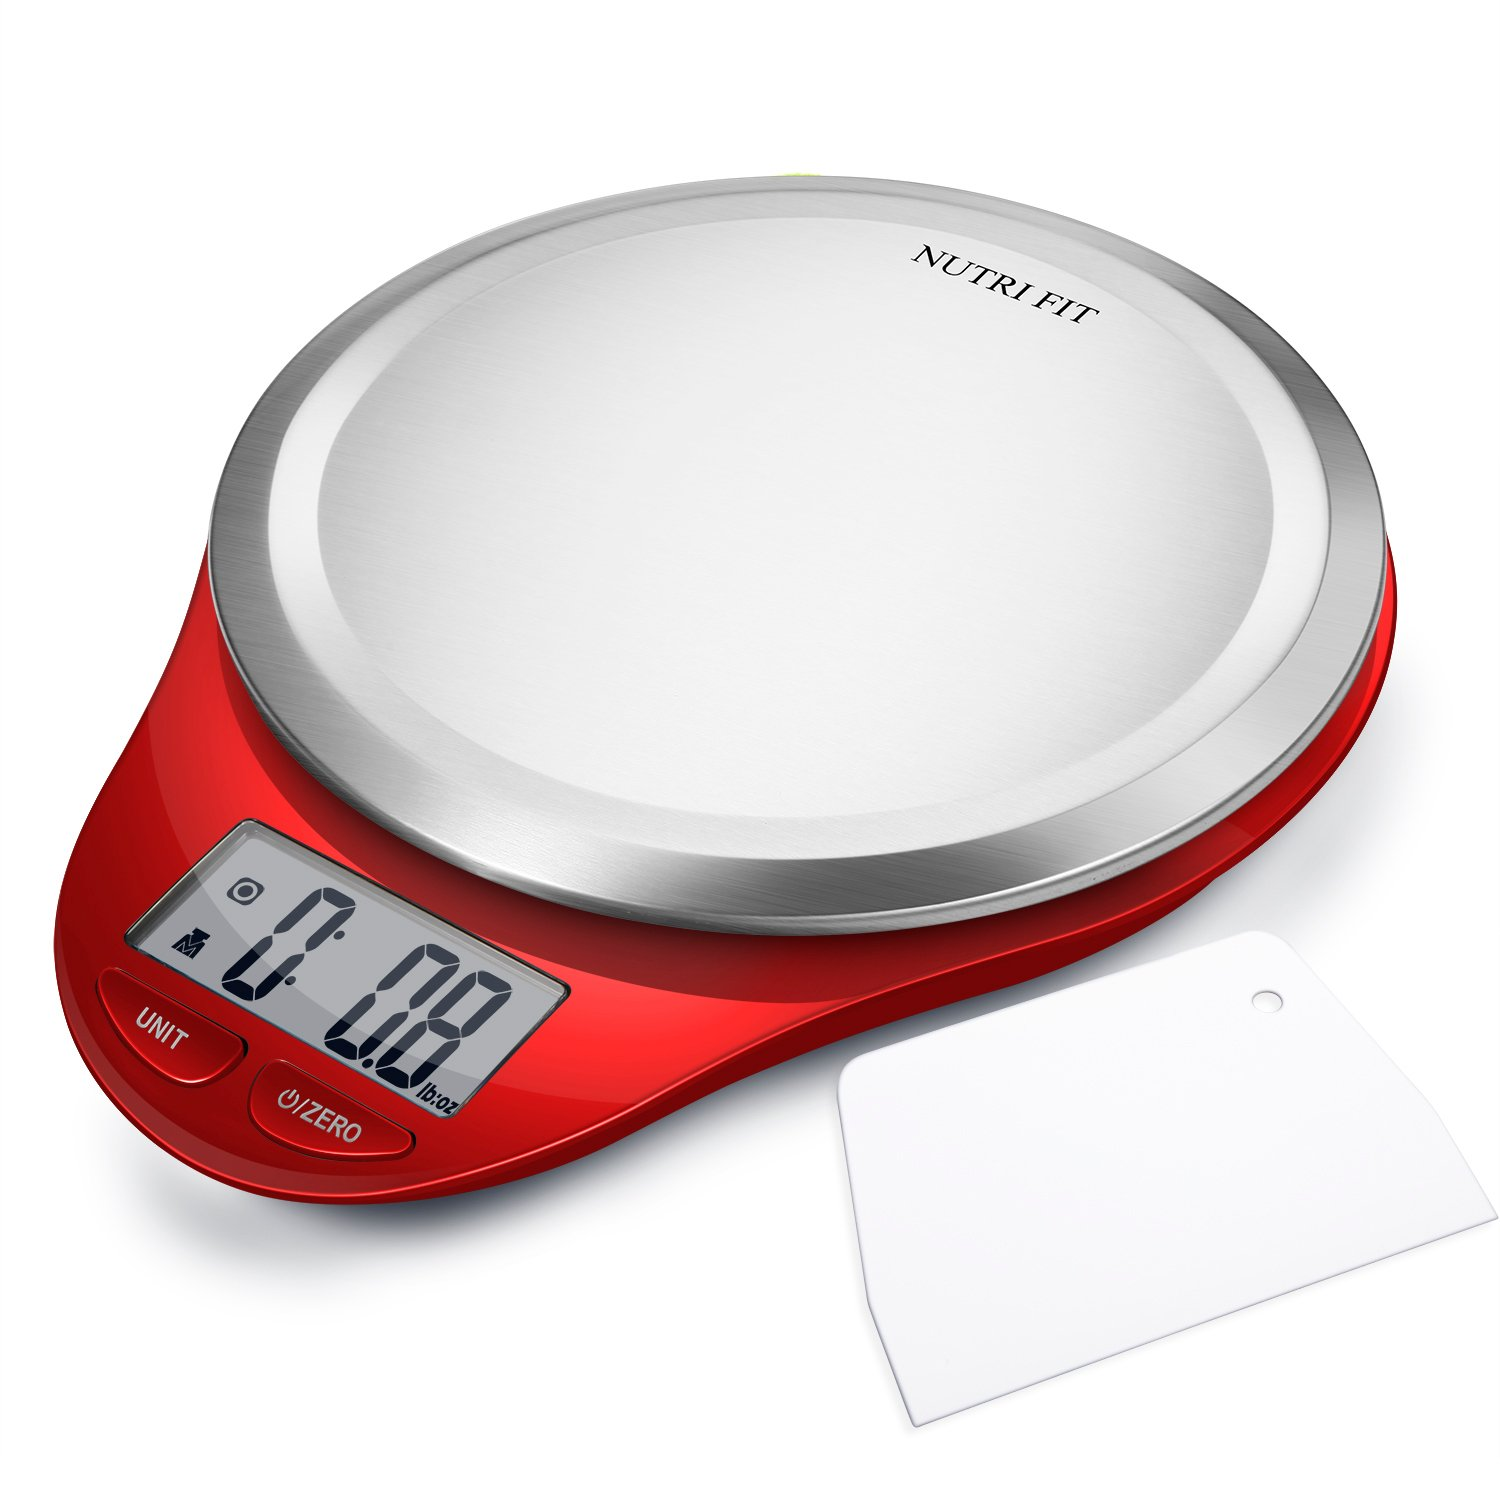 Digital Kitchen Scale with Dough Scraper, NUTRI FIT High Accuracy Multifunction Food Scale with LCD Display for Baking Kitchen Cooking,Tare & Auto Off Function (Red) by NUTRI FIT